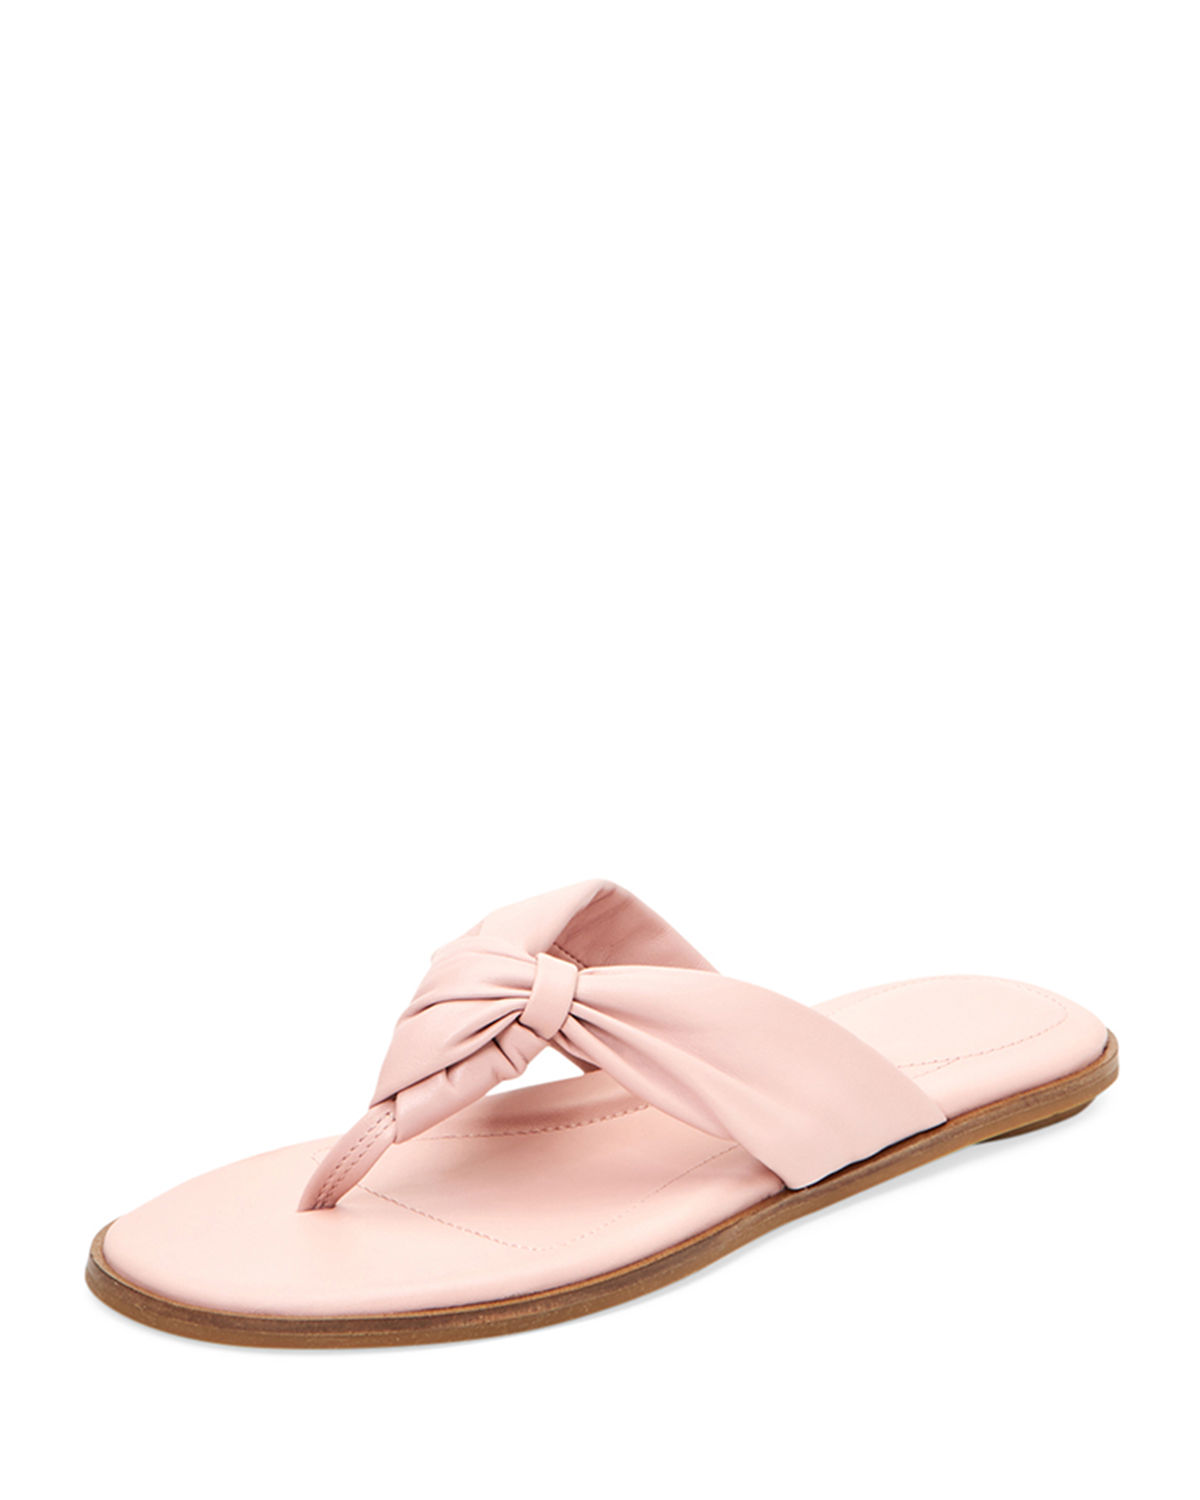 0953ad304c9 Taryn Rose Karissa Leather Twisted Thong Sandals In Light Pink ...